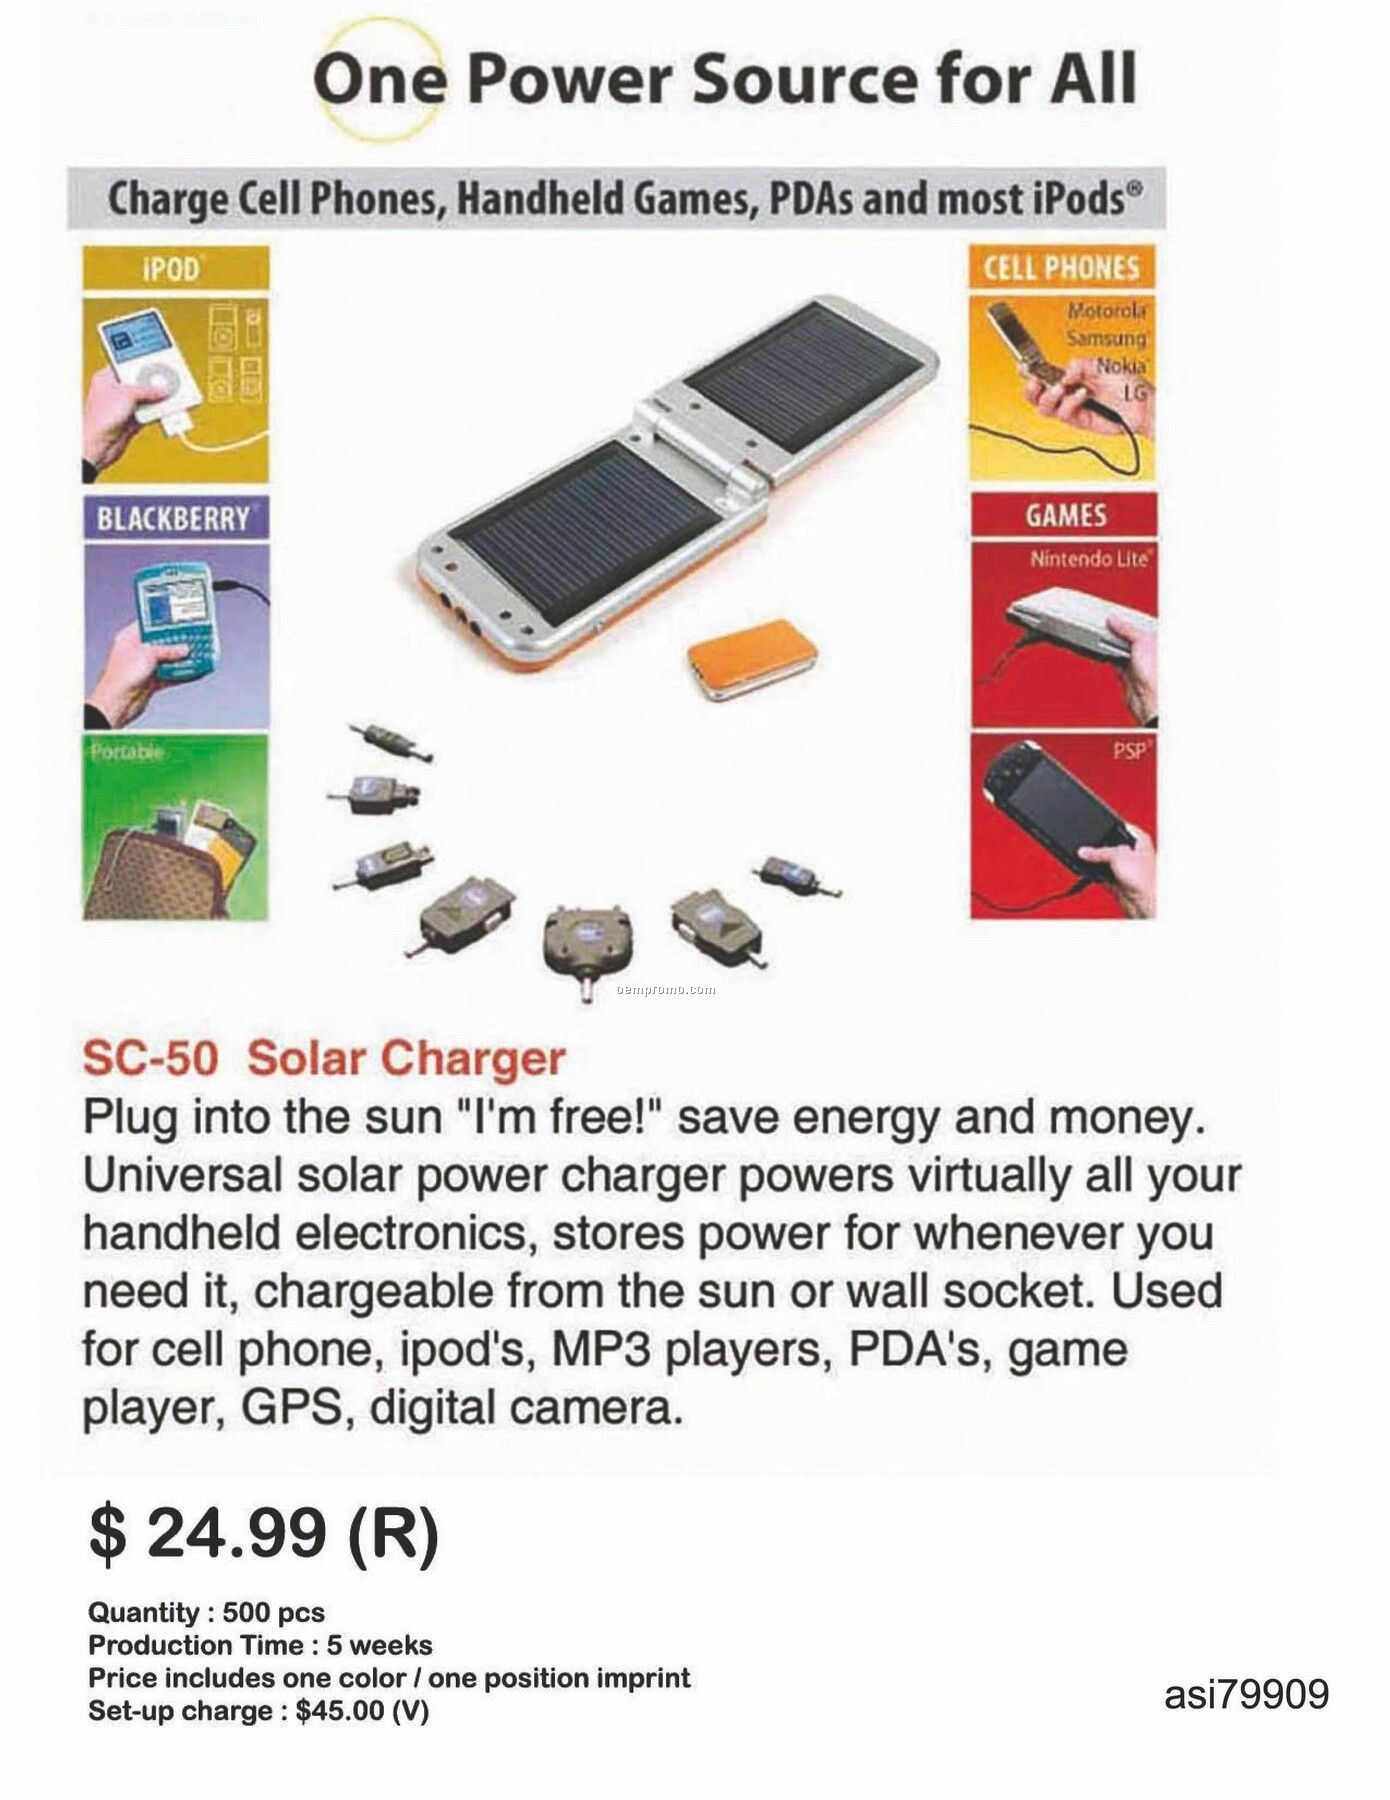 Solar Charger For Iphone, Ipod, Blackberry And Android Phones